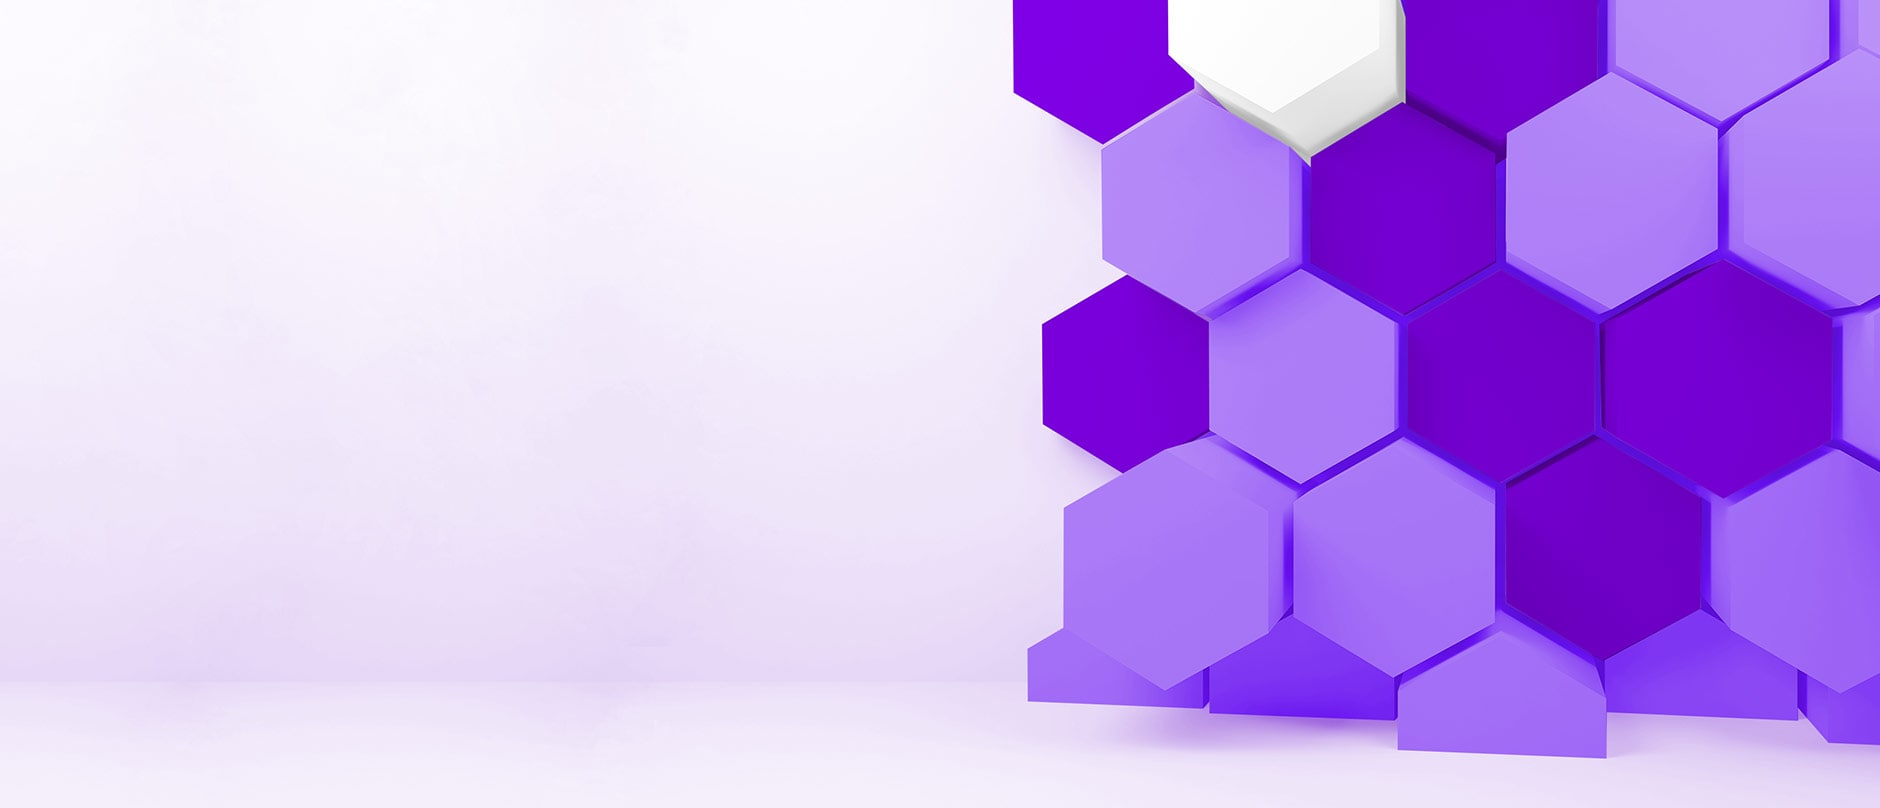 purple and white hexagons